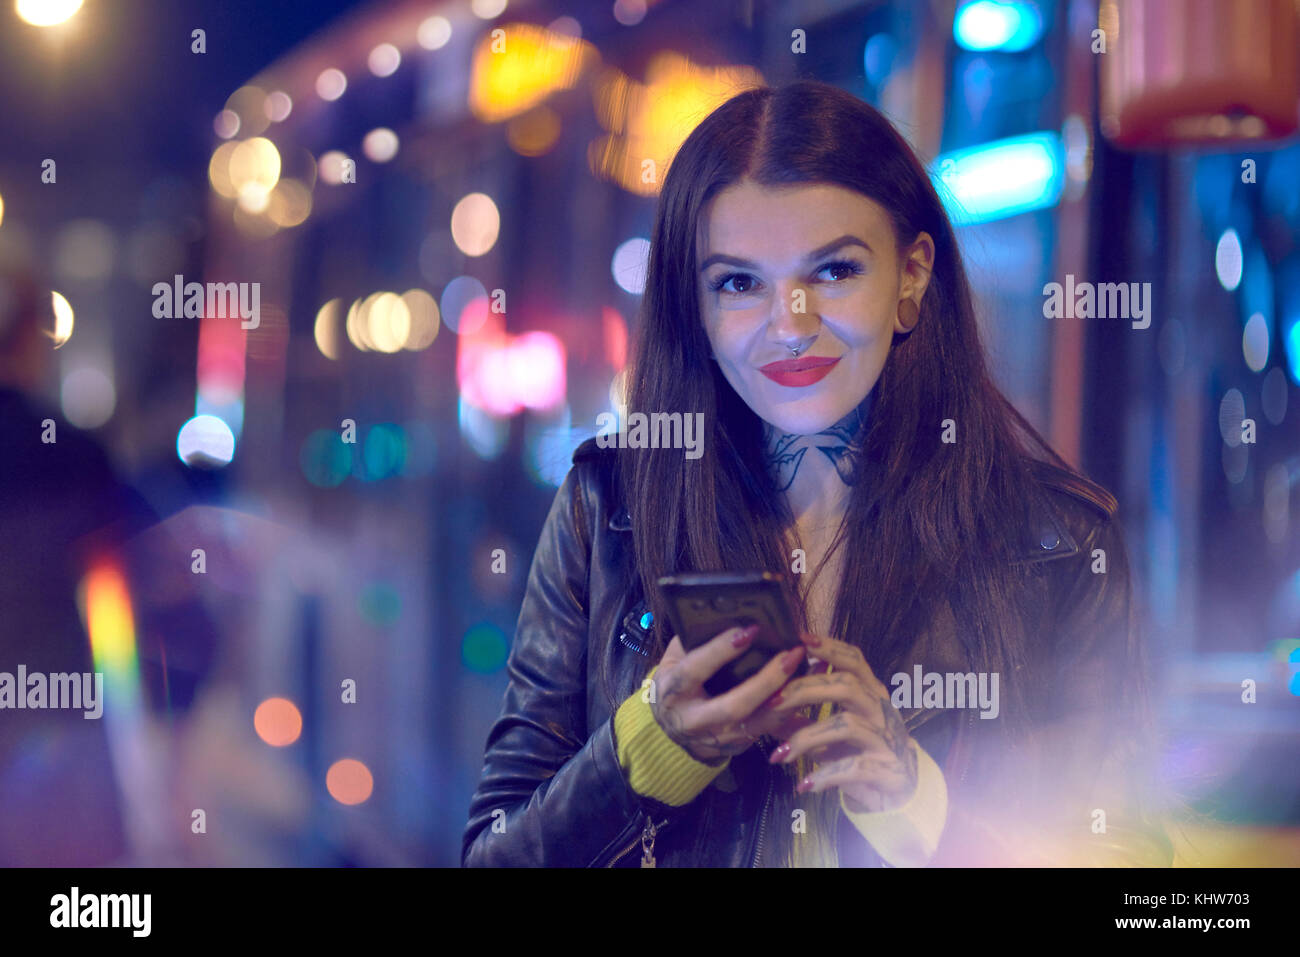 Young woman outdoors at night, holding smartphone, tattoos on hand and neck - Stock Image